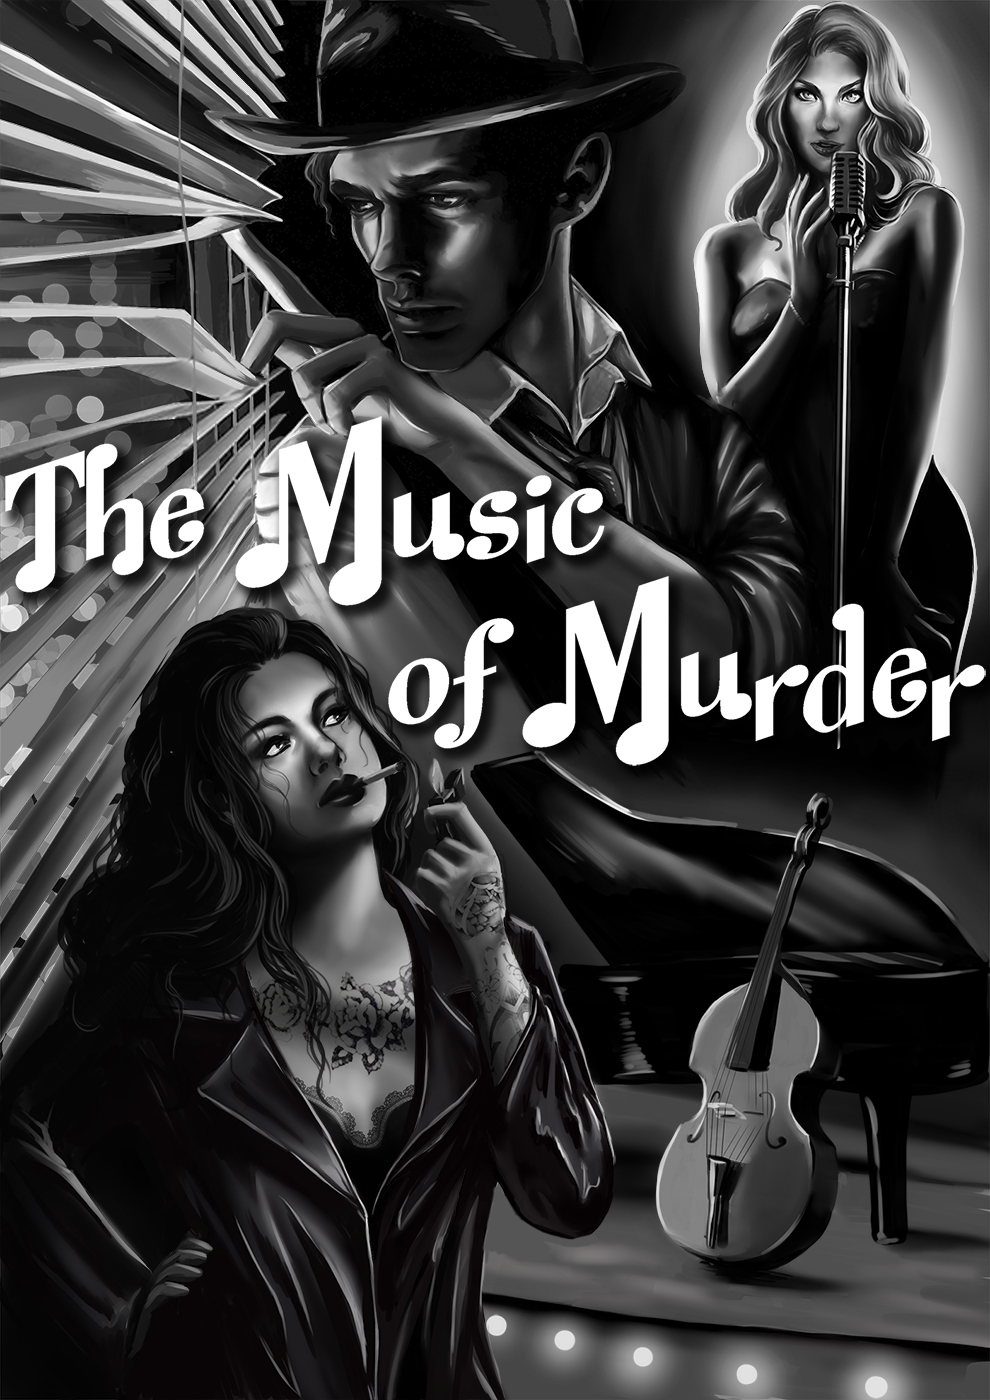 Jazz Noir: The Music of Murder - A beatnik private eye on the case of a dead friend and a doped girl, can Fearless Felix Phoenix solve this story of crime, music and murder?